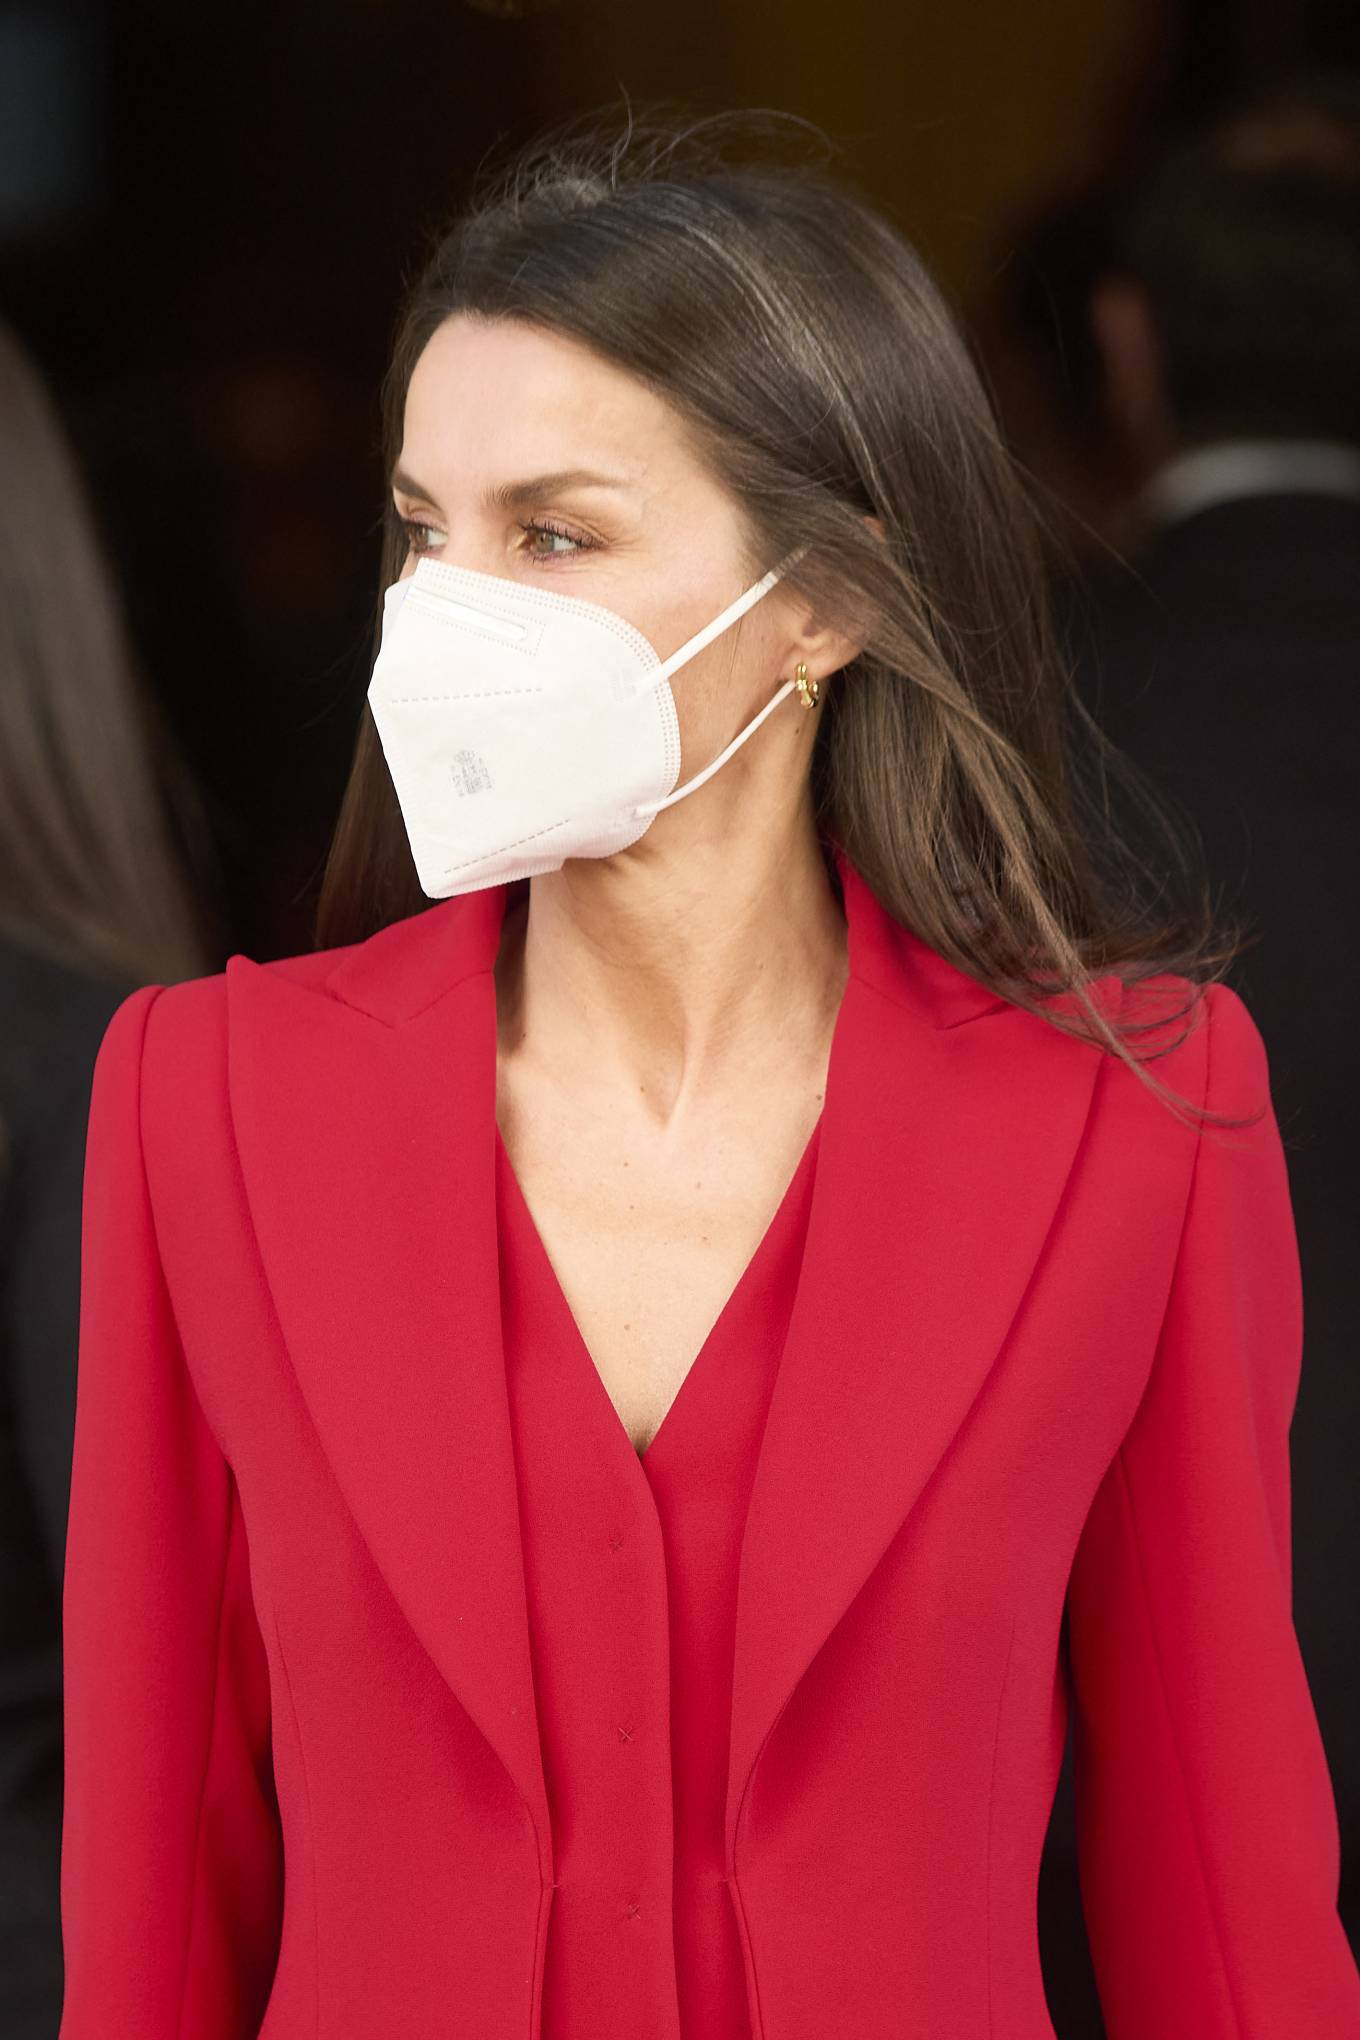 Queen Letizia Of Spain 2021 : Queen Letizia of Spain – In all red attends the tribute to the figure of Clara Campoamor in Madrid-03